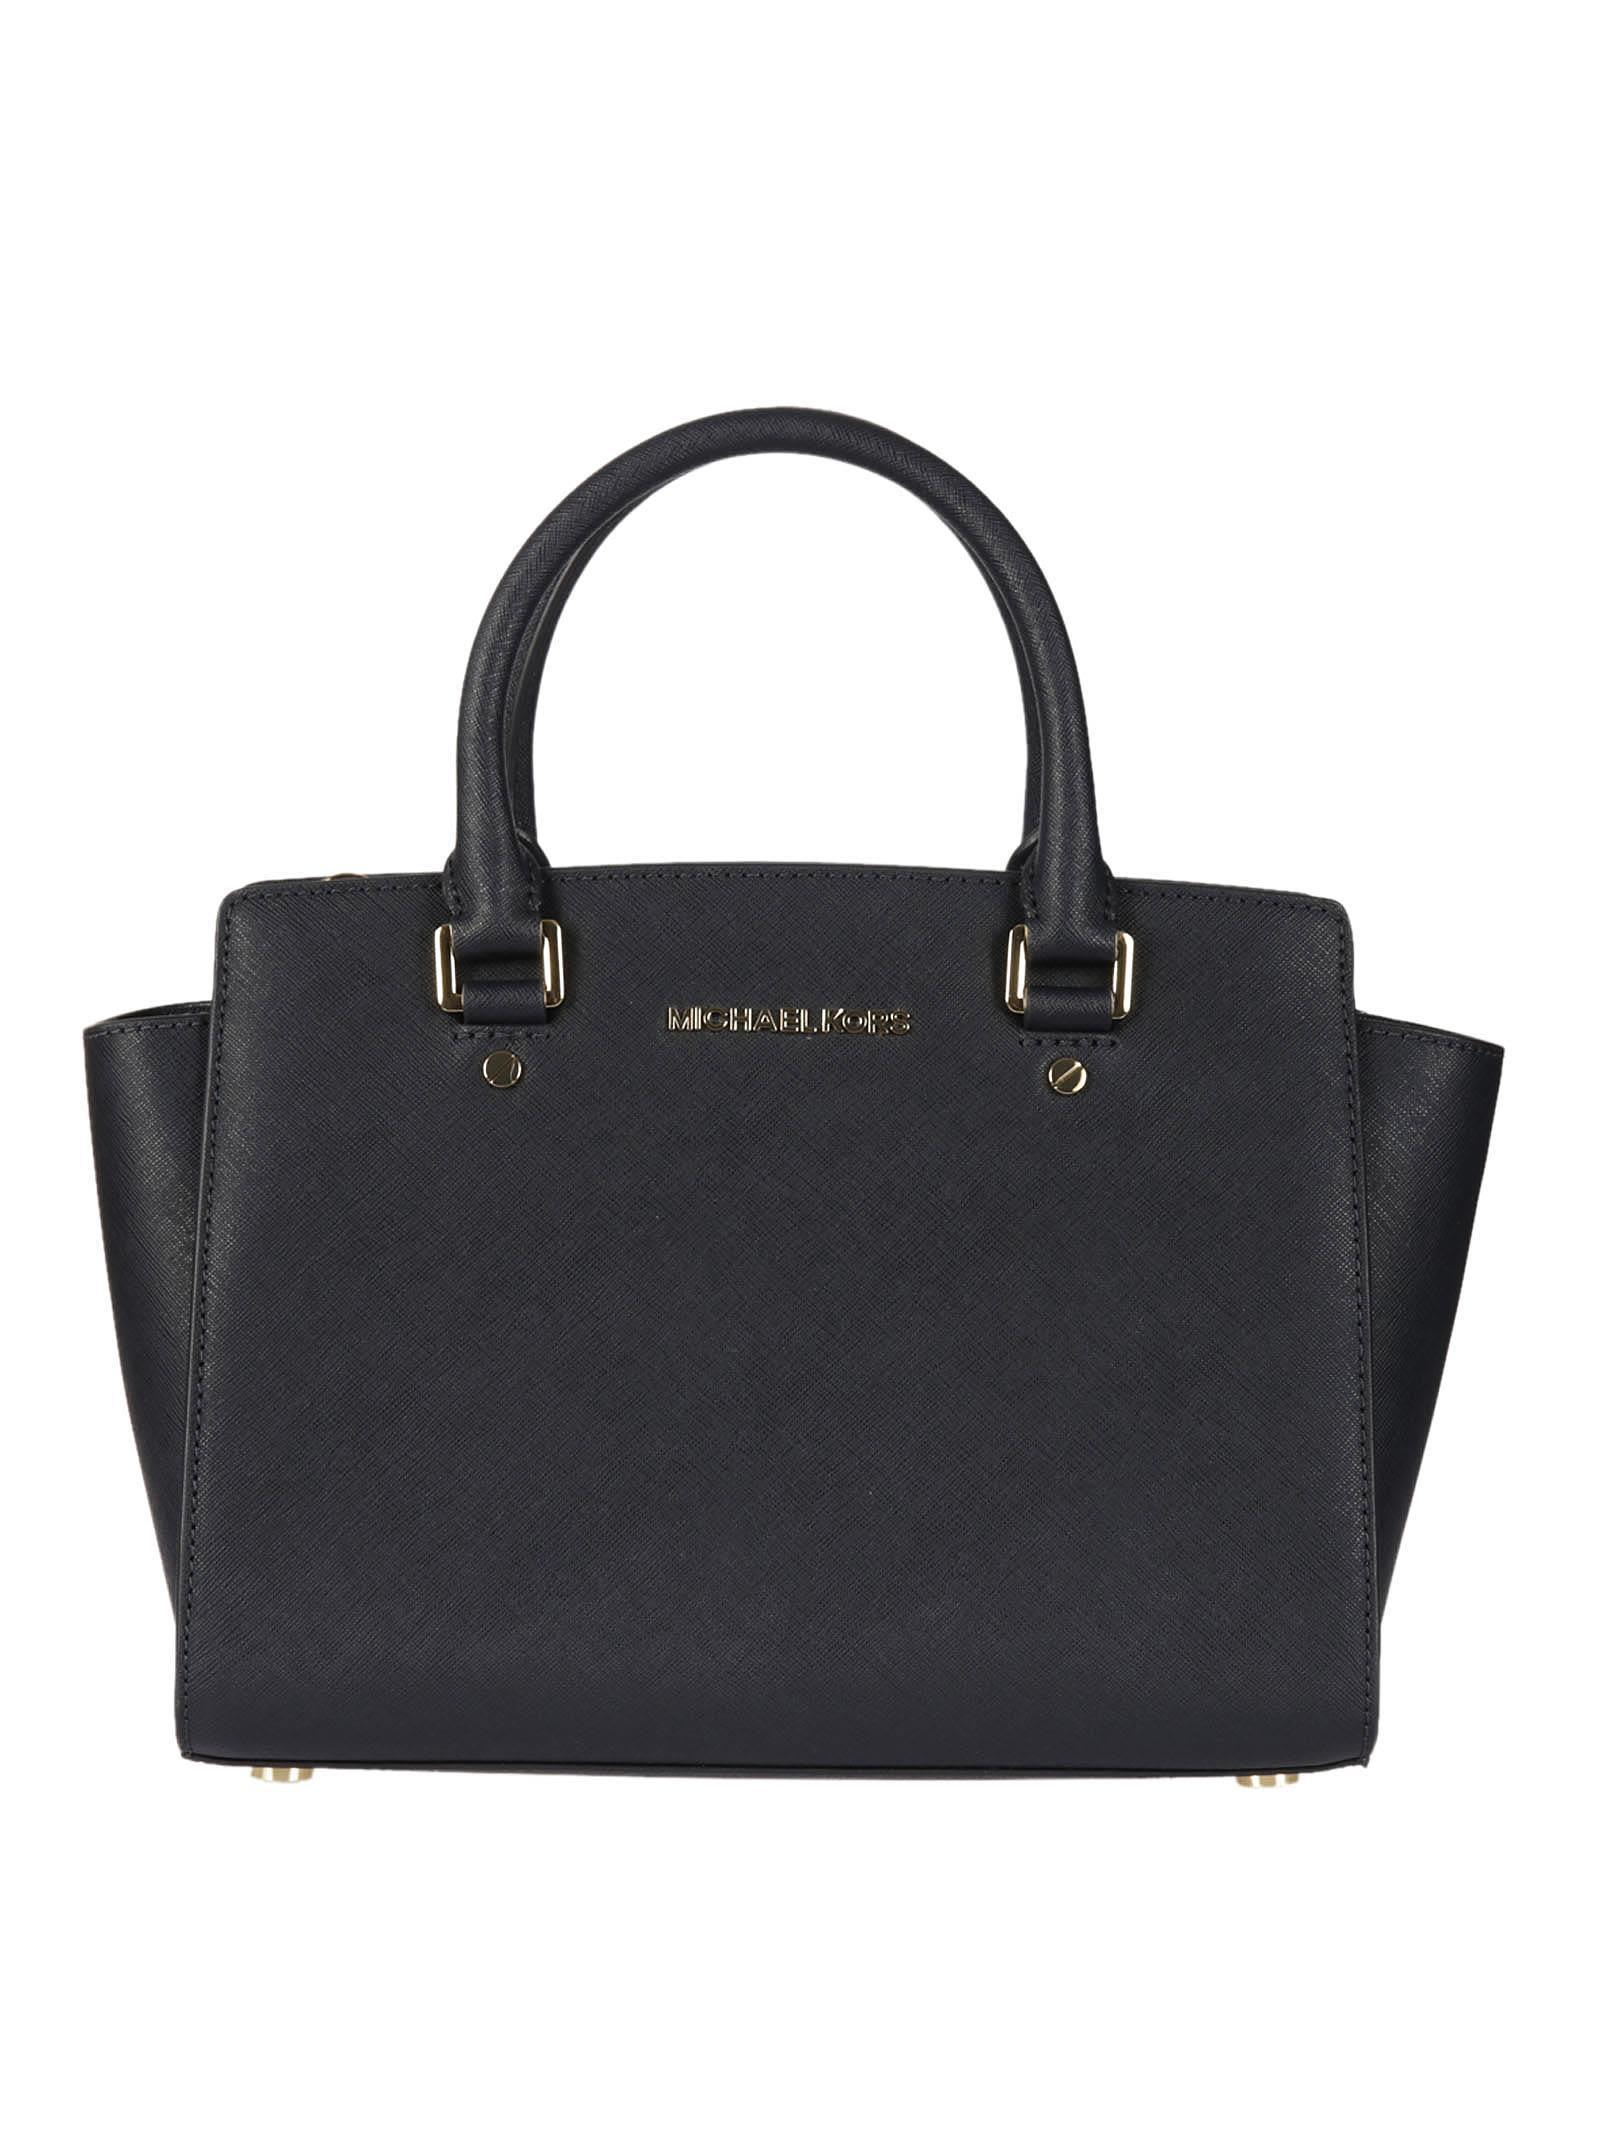 送料込 Michael Kors Medium Selma Tote バッグ